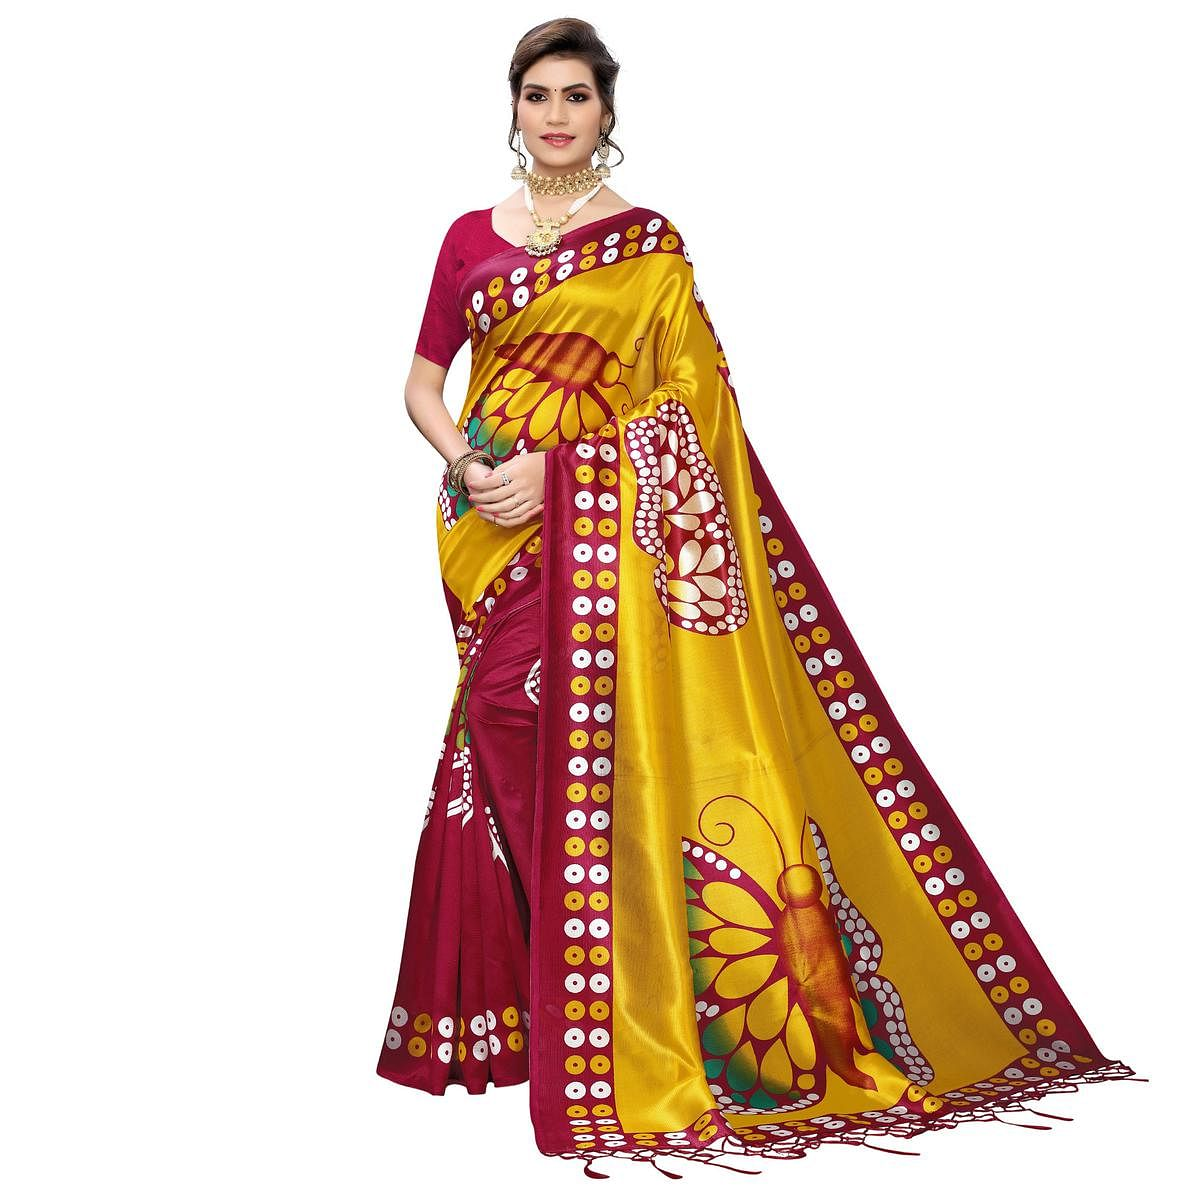 Intricate Pink-Yellow Colored Festive Wear Butterfly Printed Art Silk Saree With Tassels